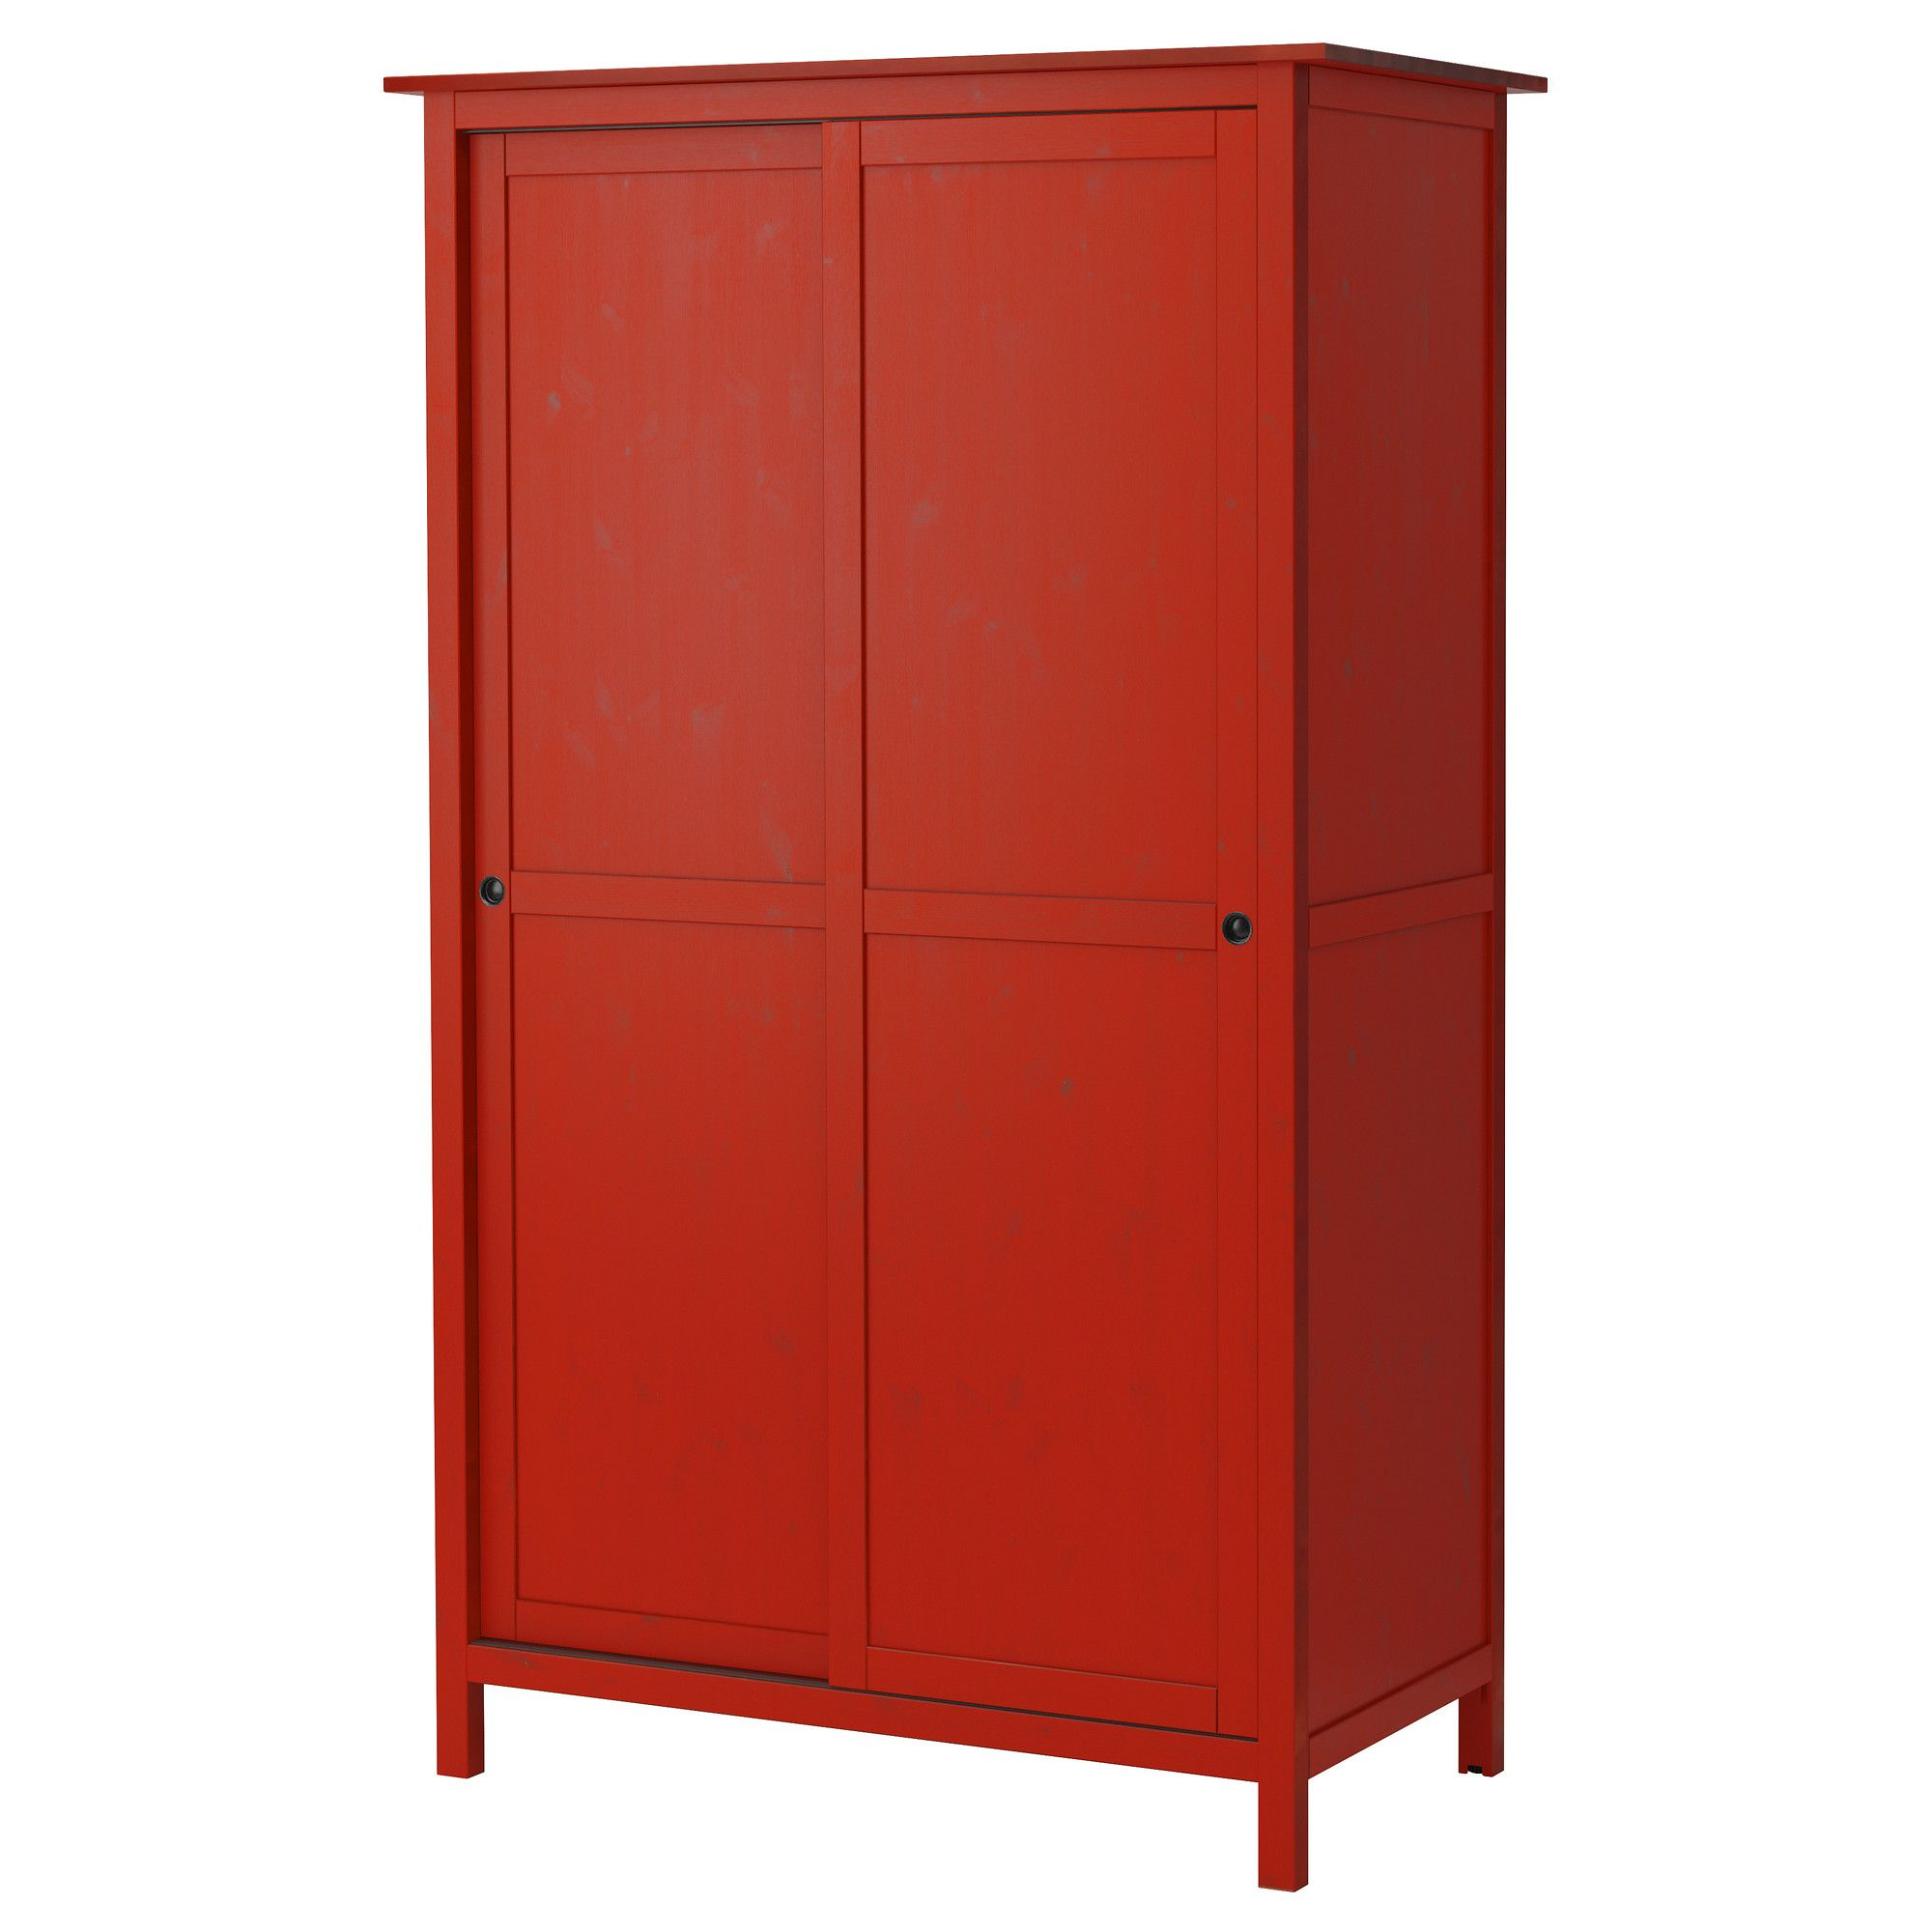 hemnes kleiderschrank mit 2 schiebet ren rot ikea oder. Black Bedroom Furniture Sets. Home Design Ideas